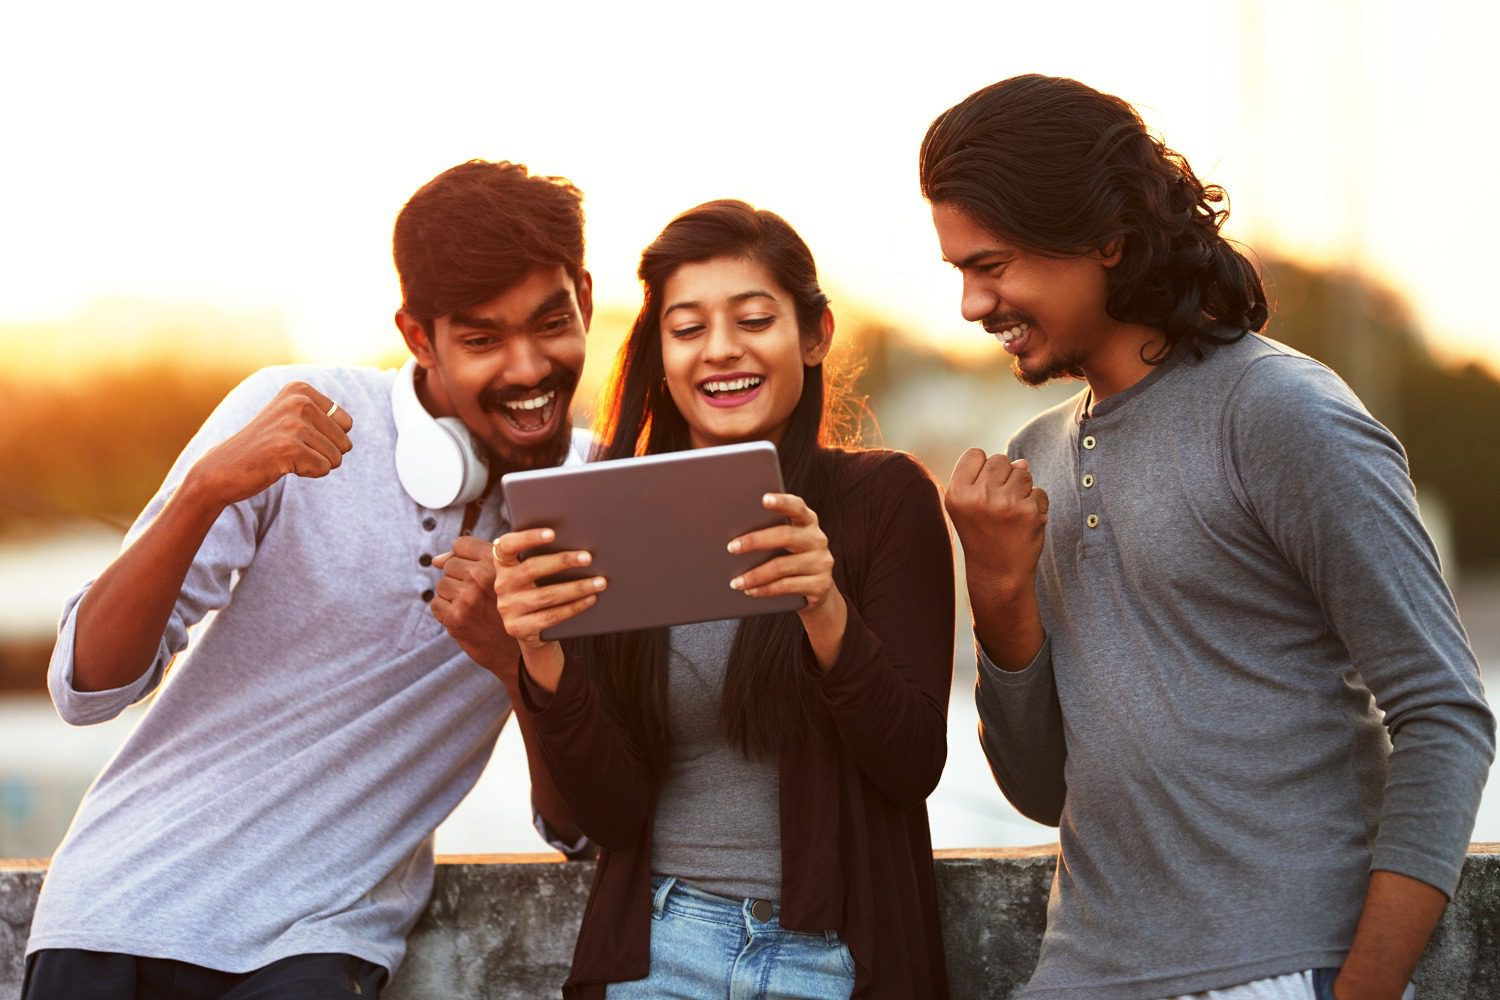 Three people smiling at a tablet.